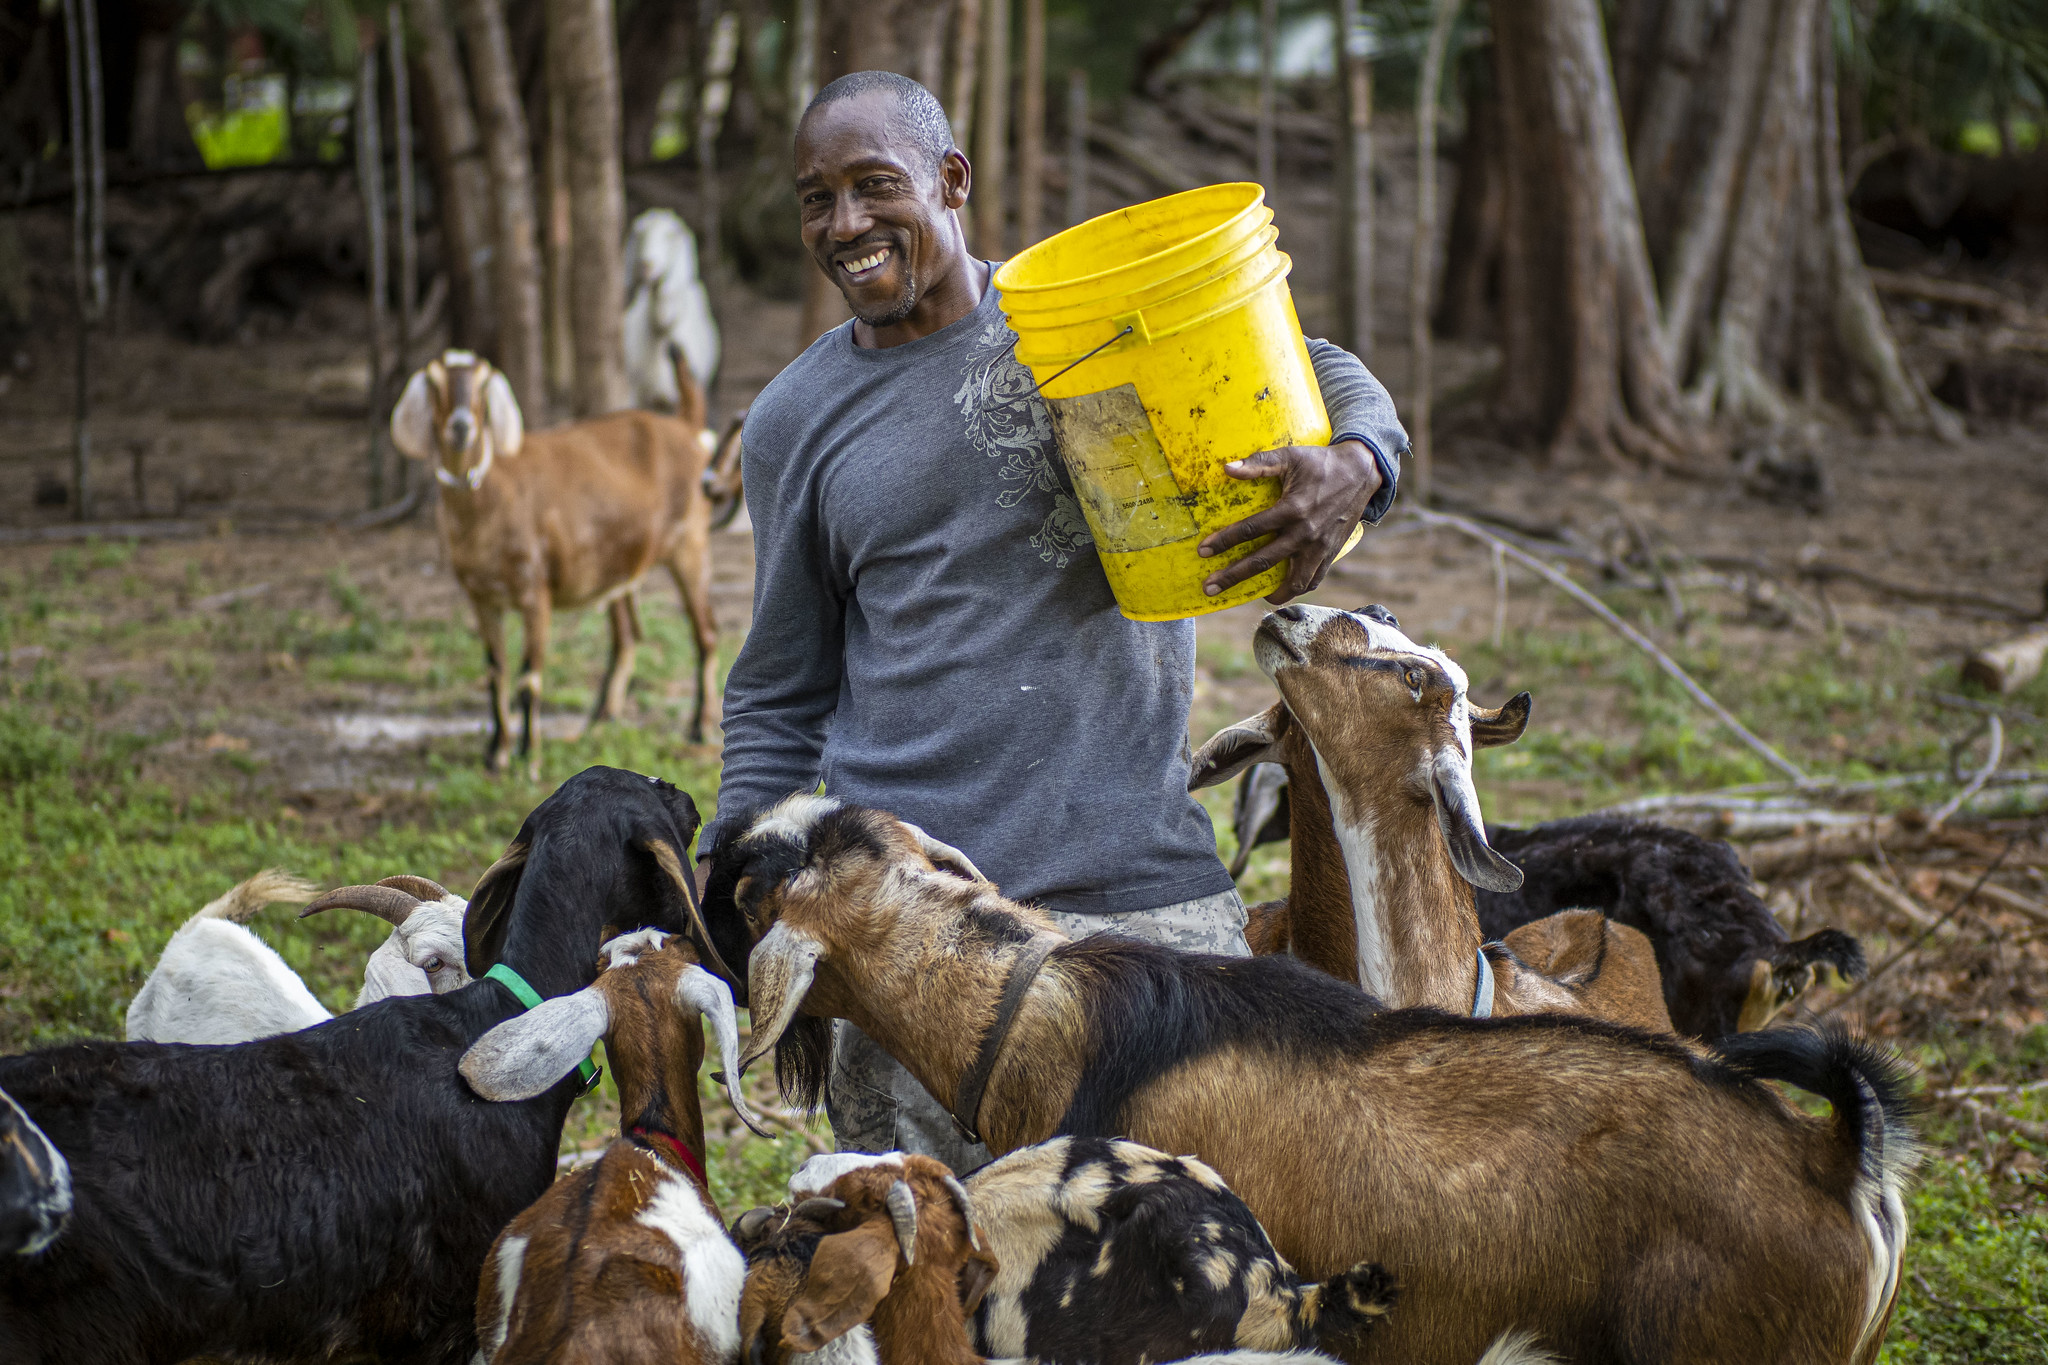 Celebrate Juneteenth By Keeping Our Promises to Black Farmers